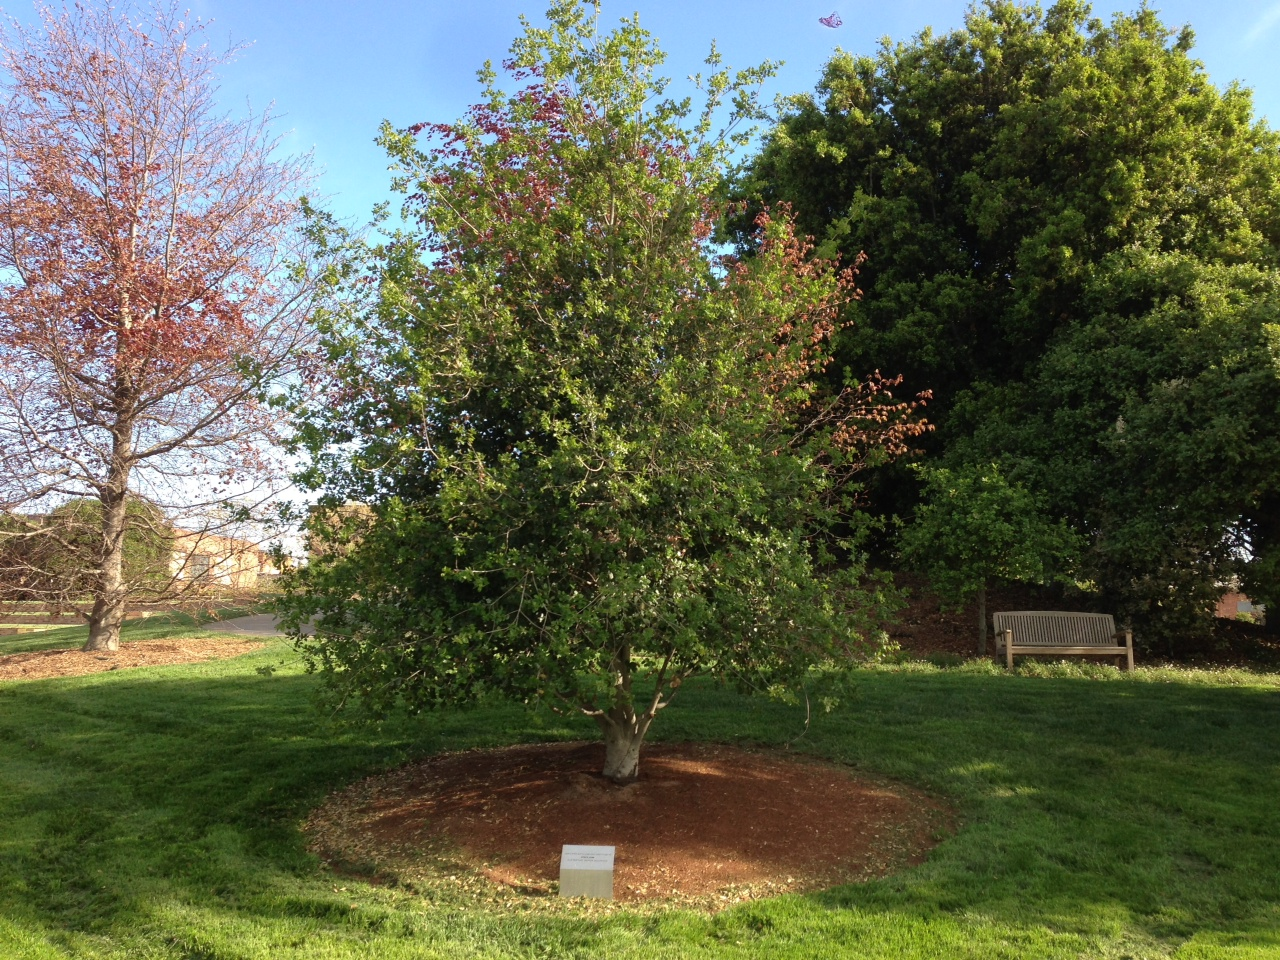 Tree On Pixar Campus Dedicated To Steve Jobs